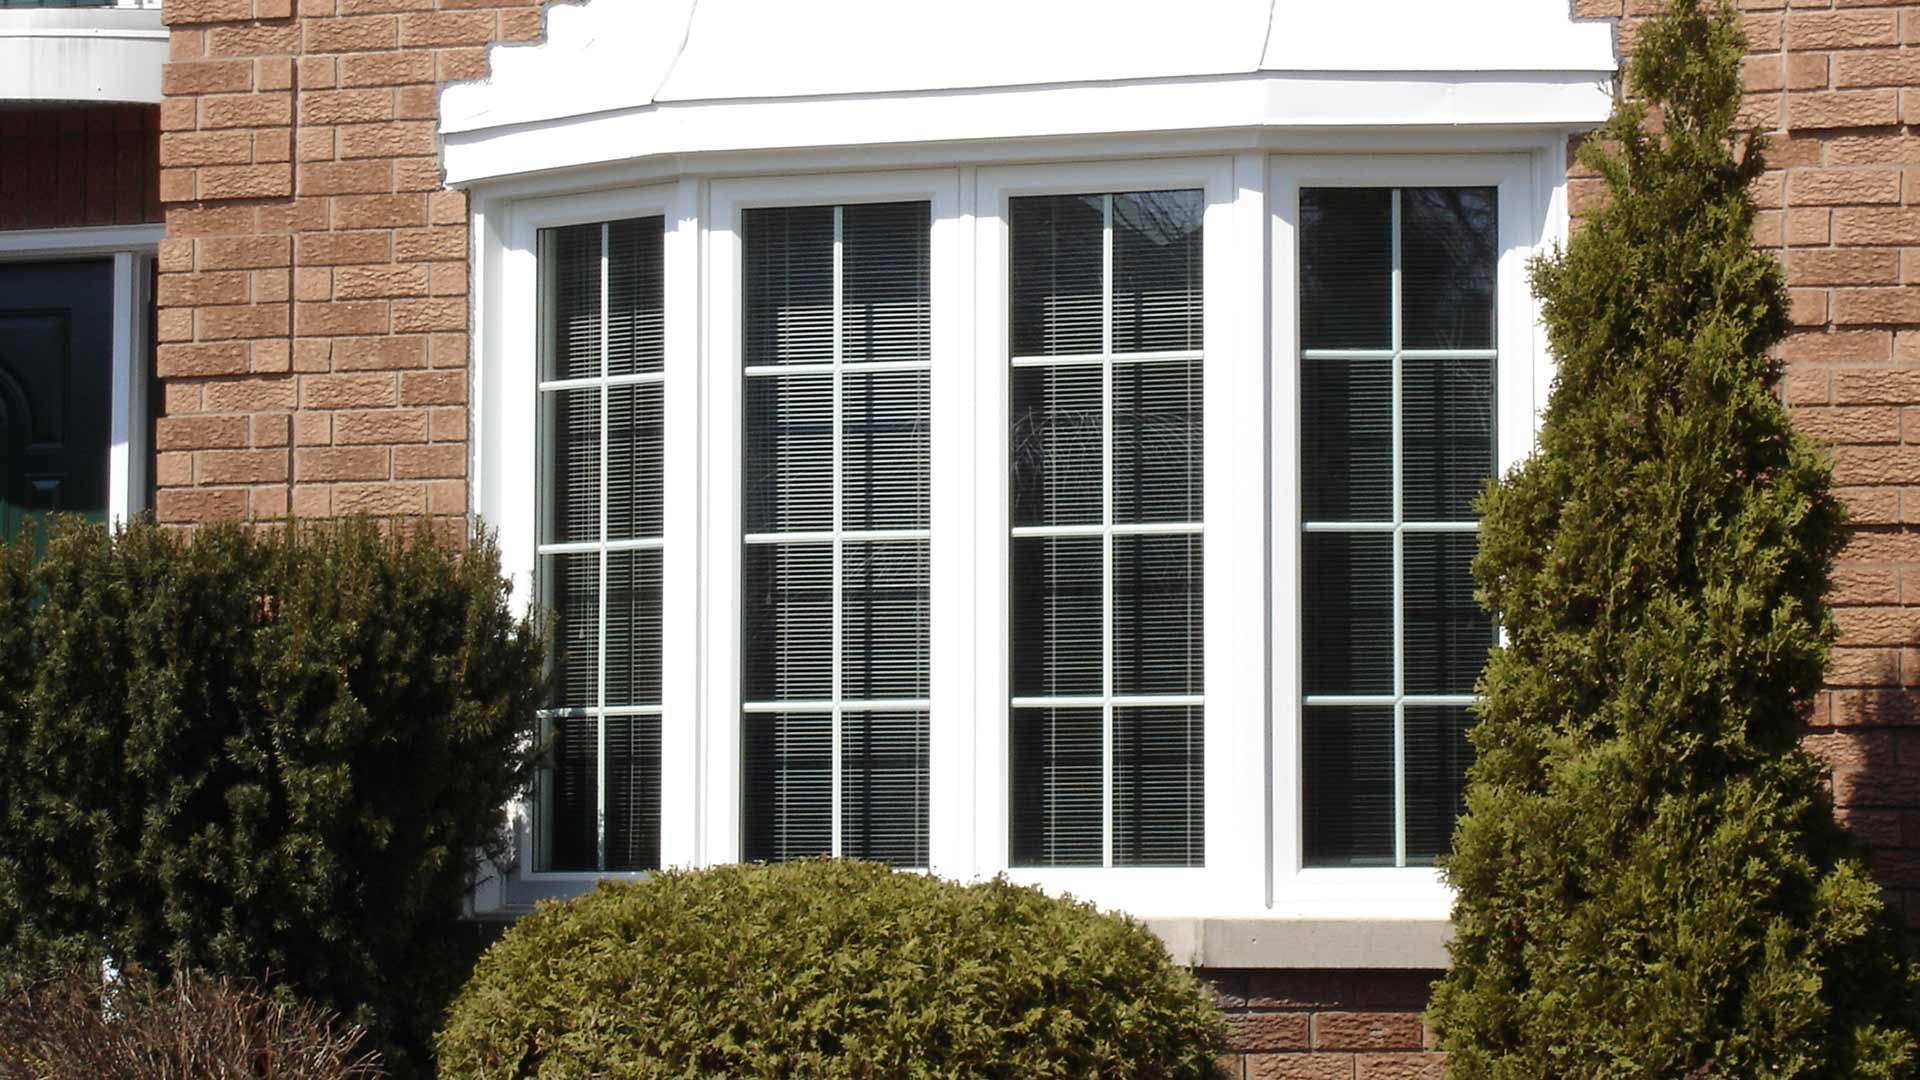 The front of a house with a window with grilles.